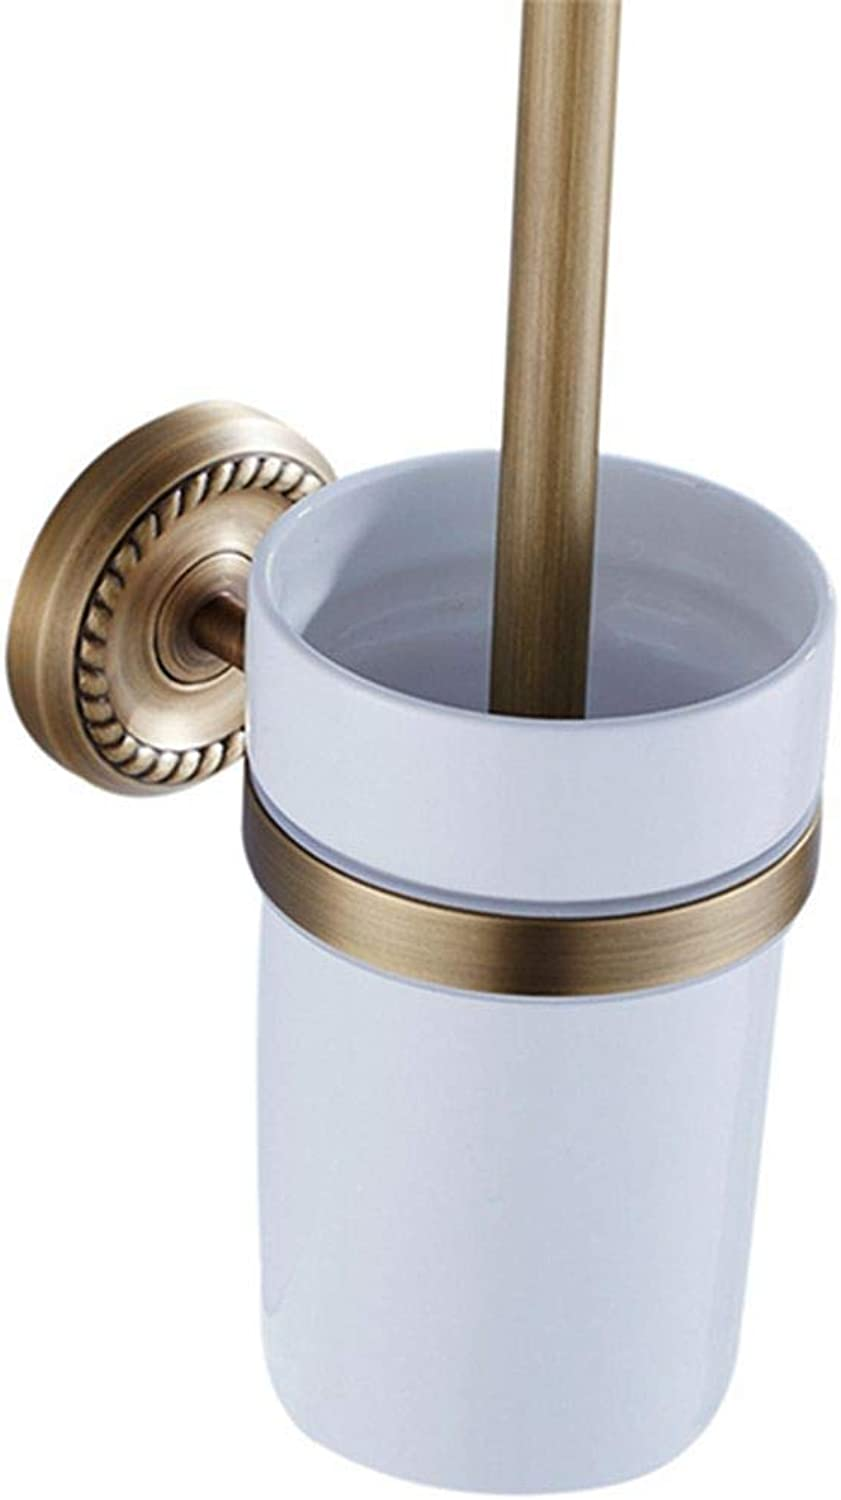 LUDSUY Antique Brass with Ceramic Cup Wall-Mounted European Brass Toilet Brush Holder Bathroom Accessories